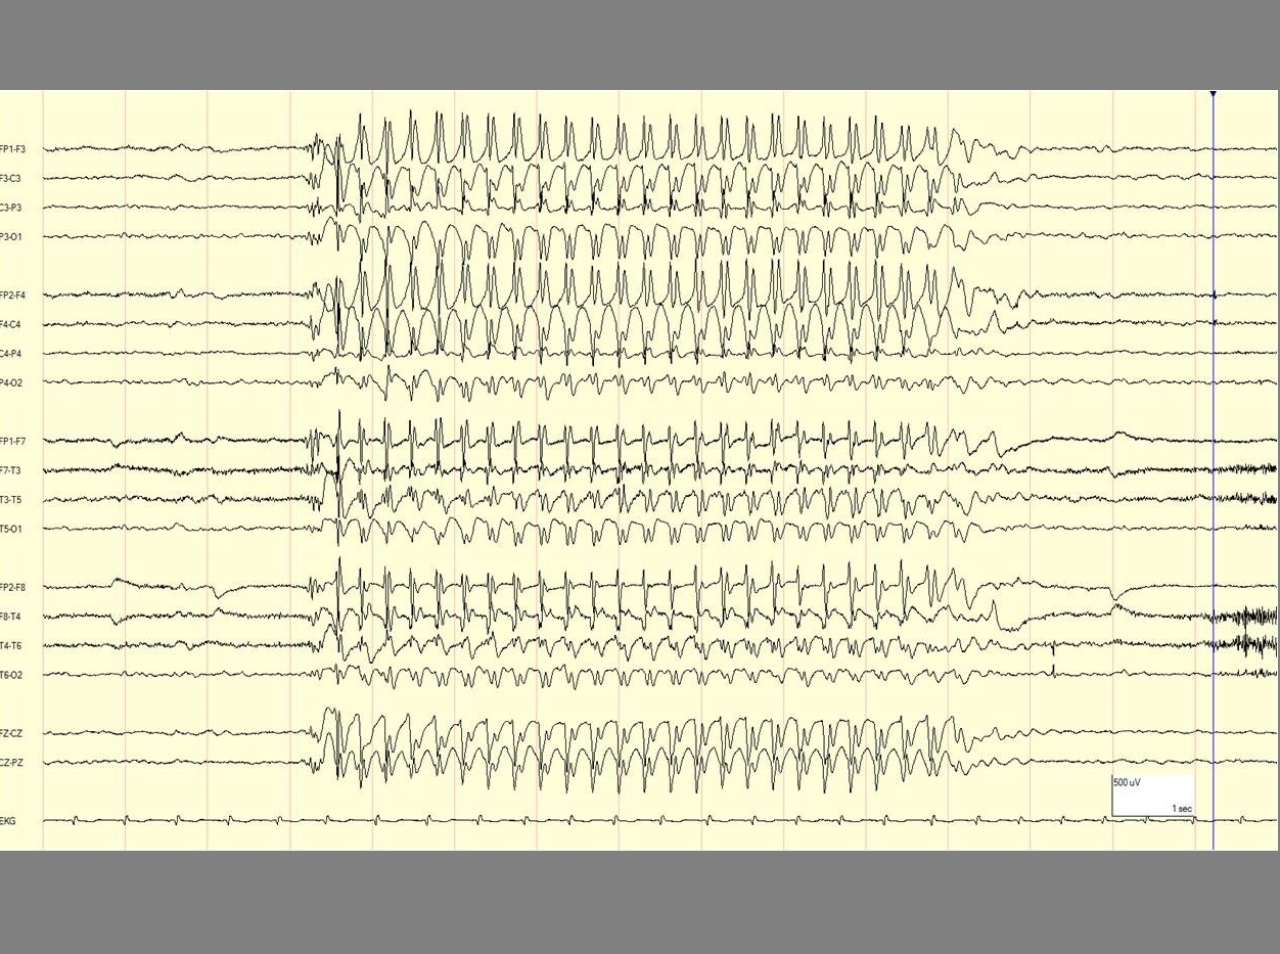 The EEG, a monitor of brain activity, during a seizure. In the left and right corners of the EEG tracing is the normal functioning of the brain. In the center is the rhythmic activity that characterizes a seizure. (www. epilepsydiagnosis.org)